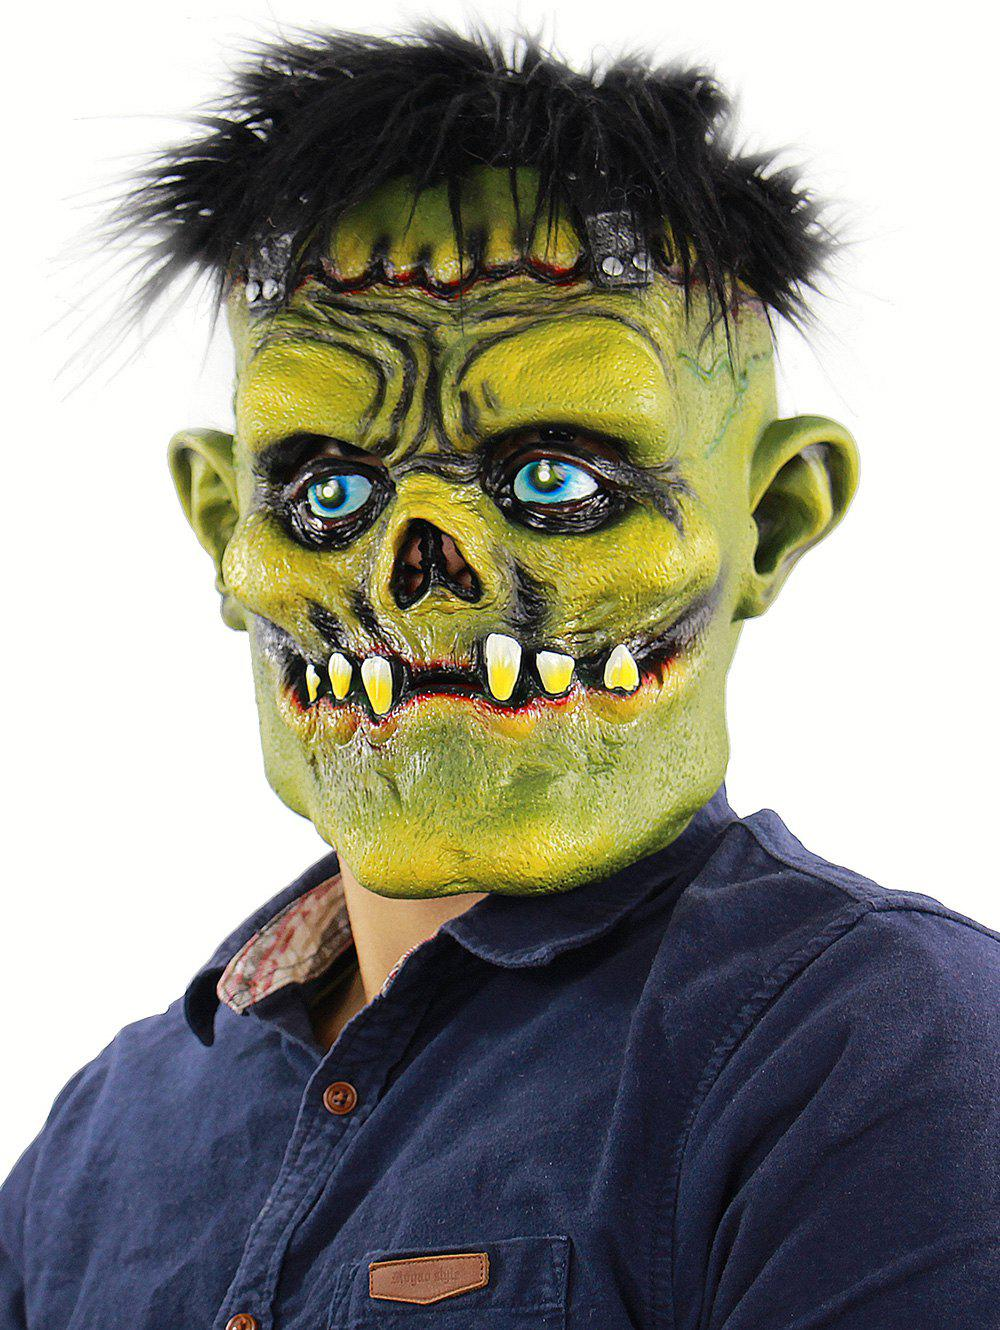 Masque de tête de monstre de fête d'Halloween - multicolor